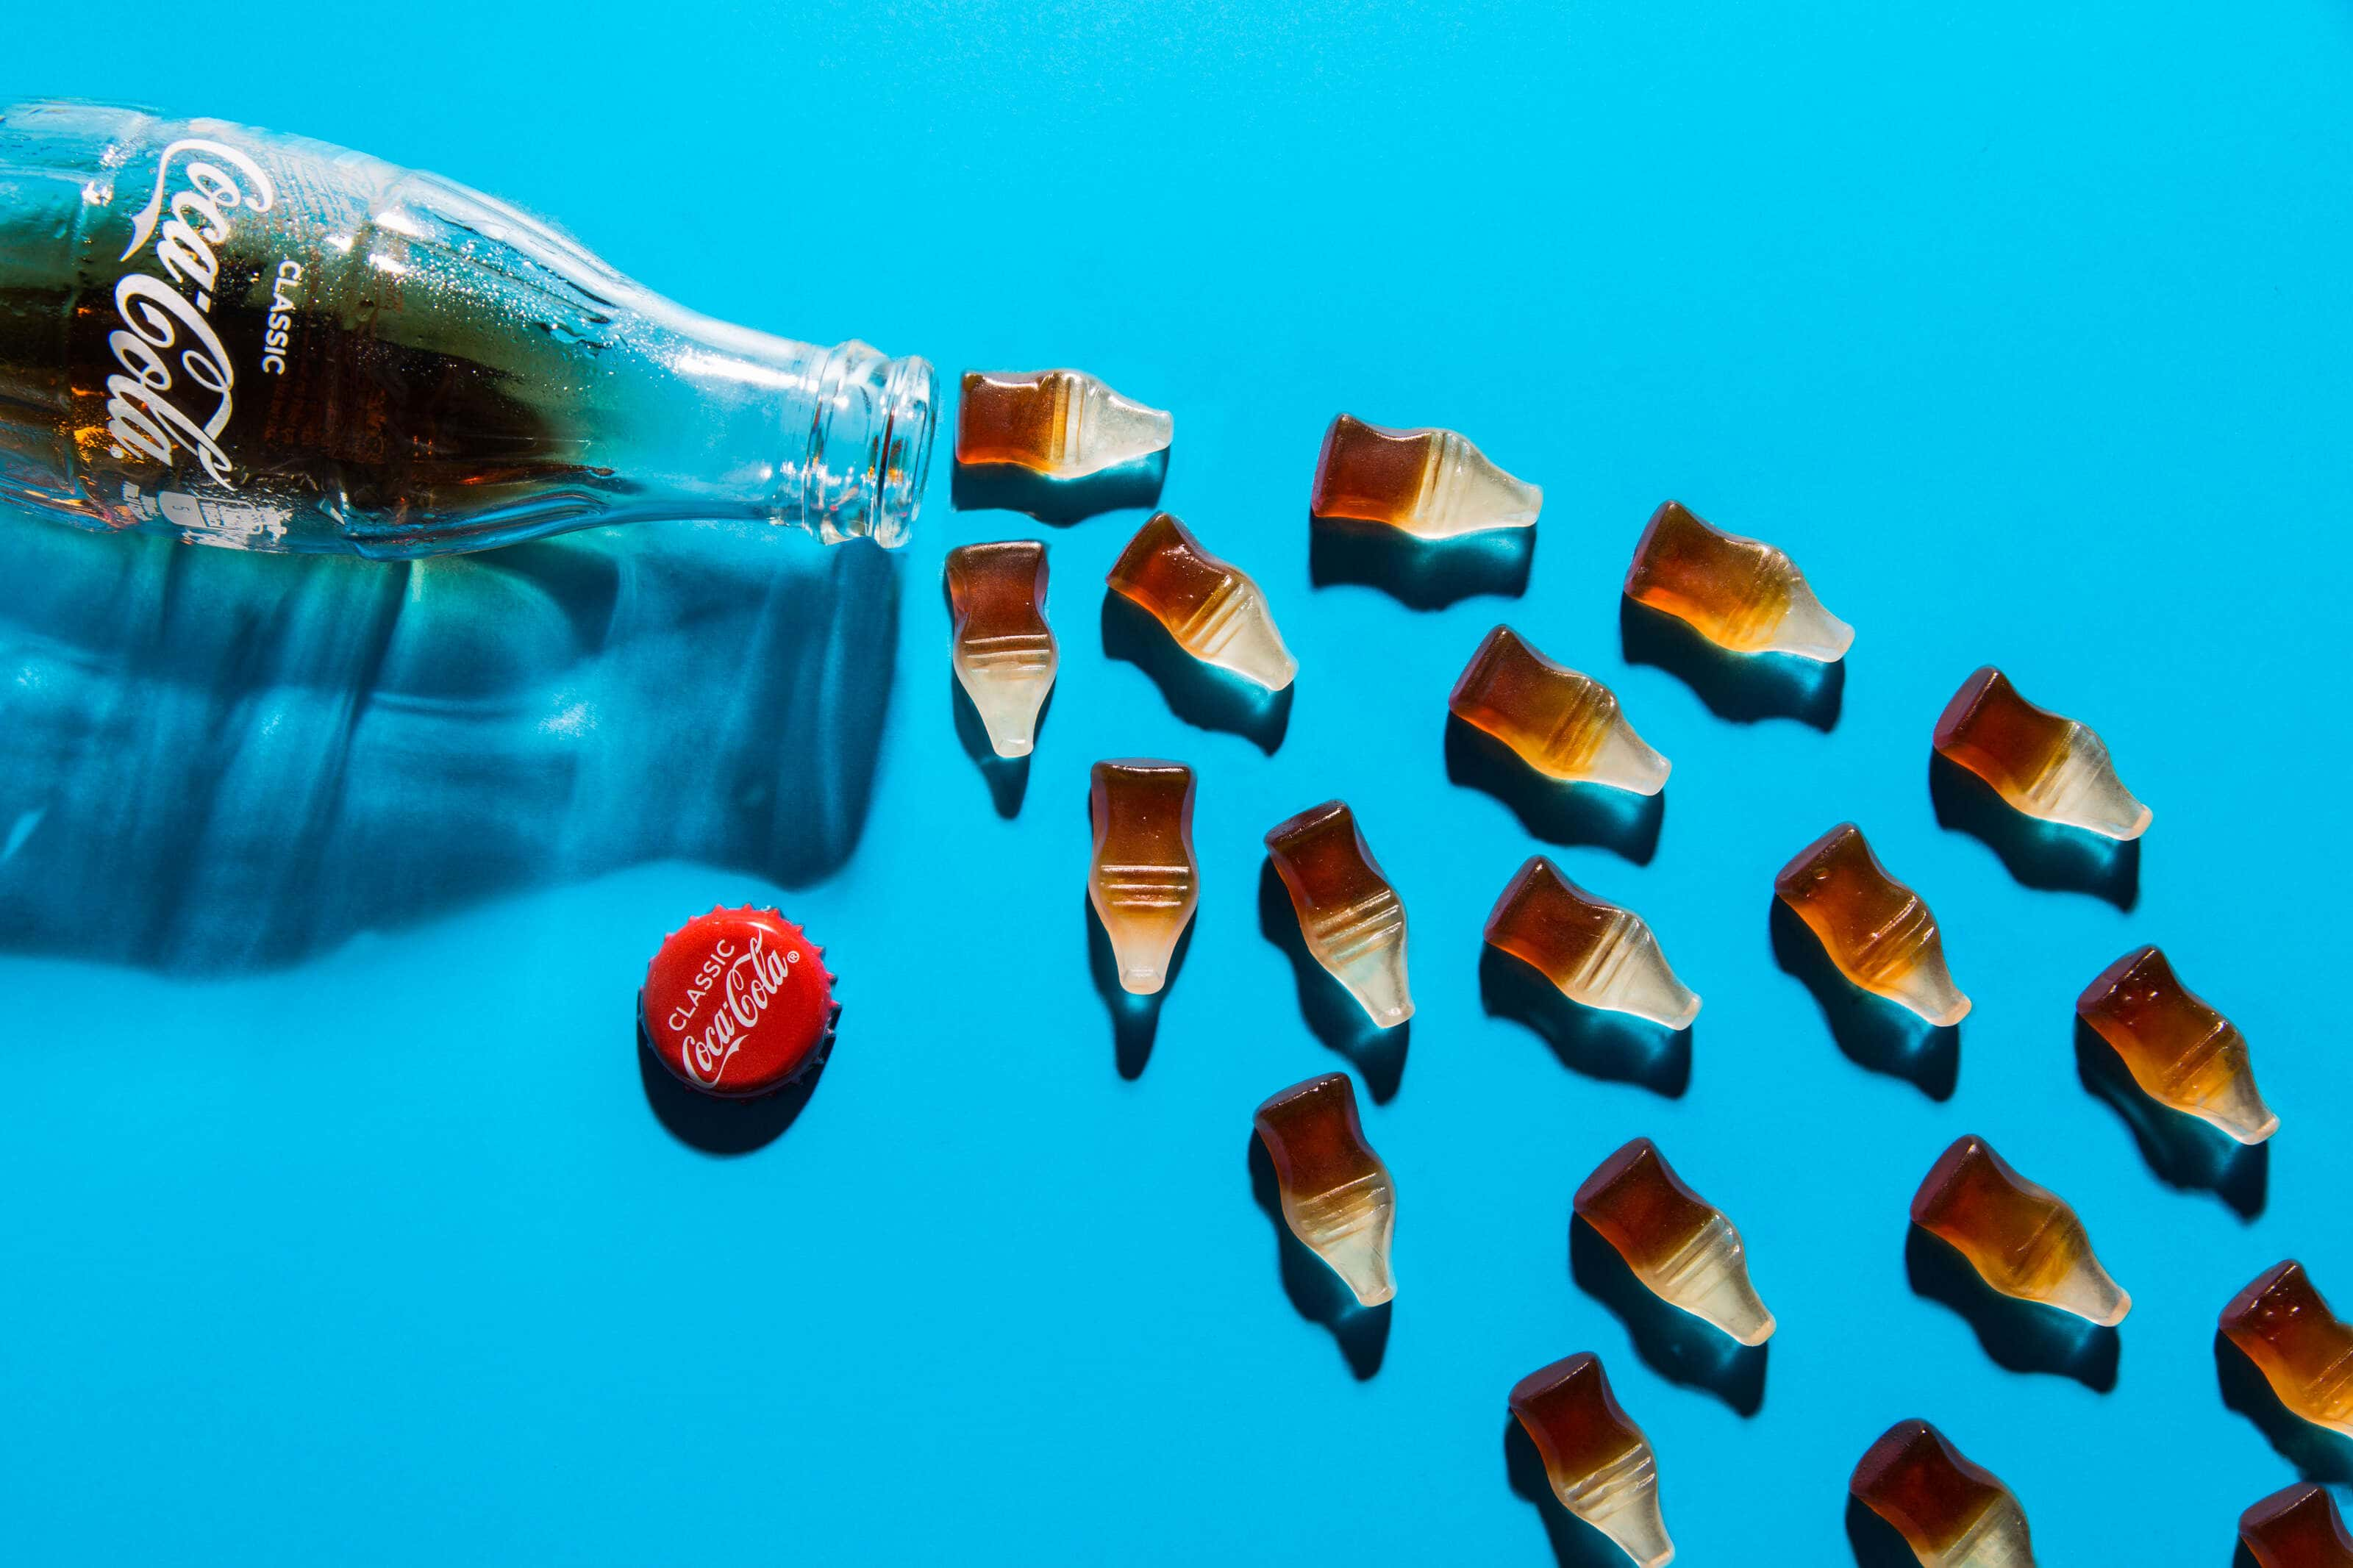 Coca-Cola bottle with coke sweets Pouring out on blue background pop art style